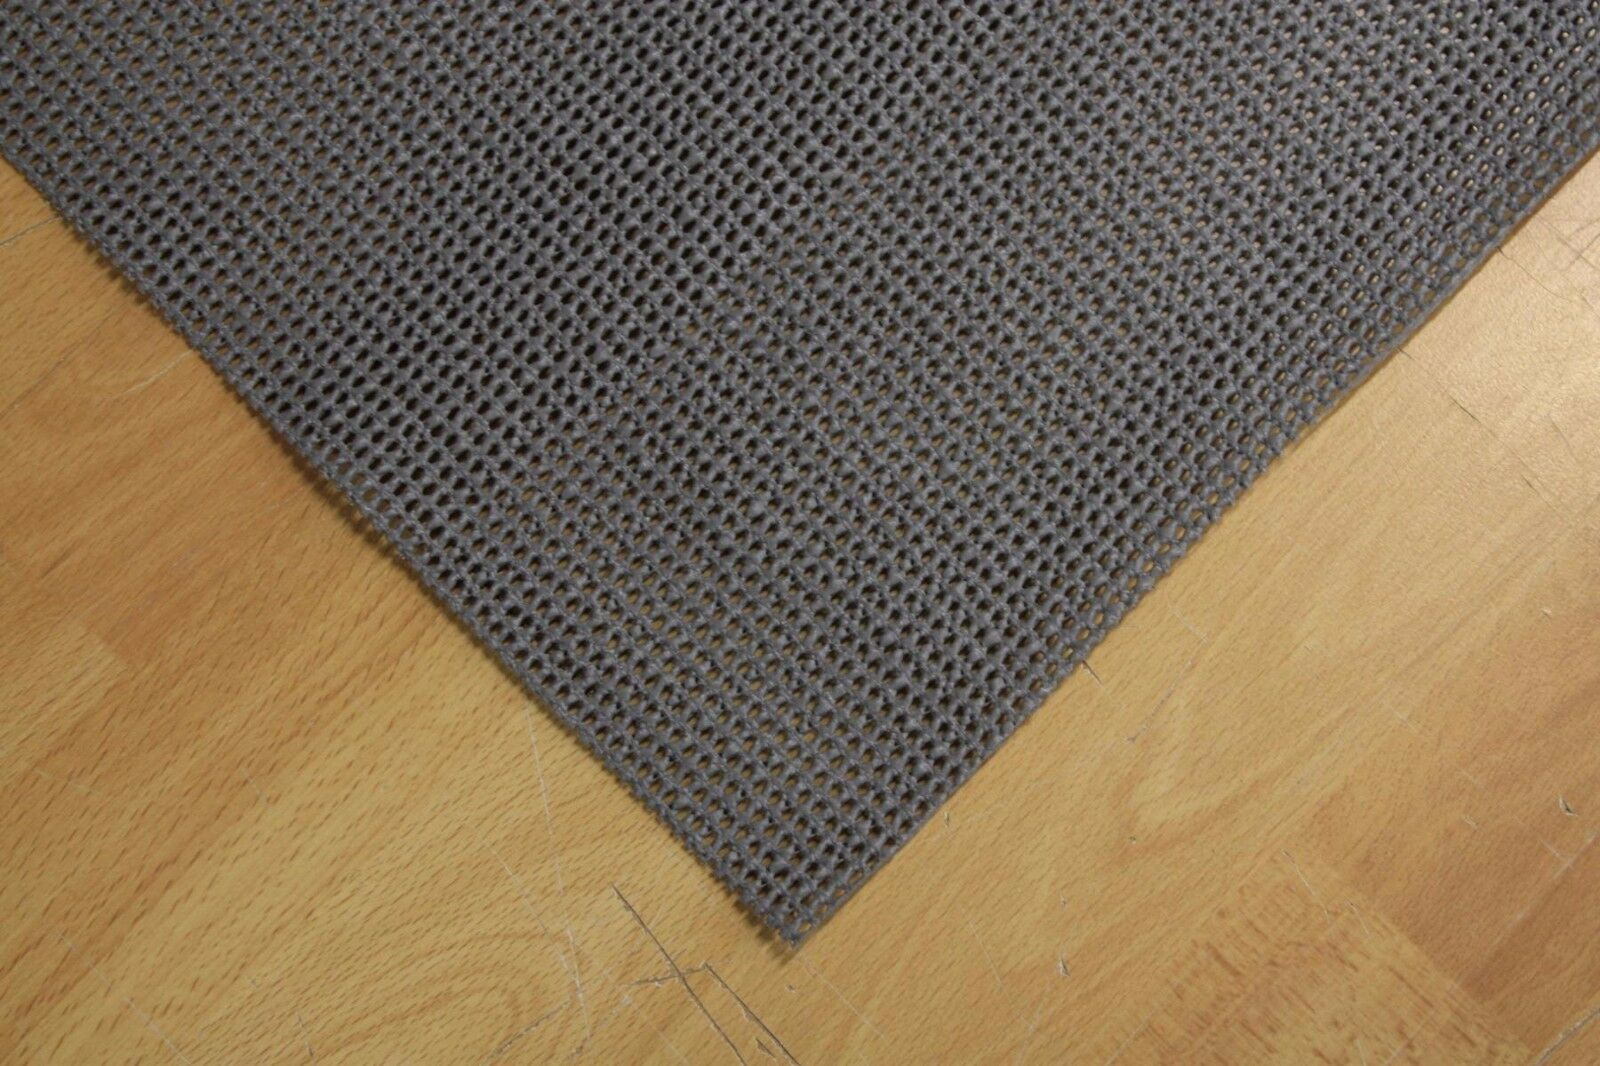 Tent Carpet Camping Rug Awning Carpet grau 250 x 650 cm Made in Germany